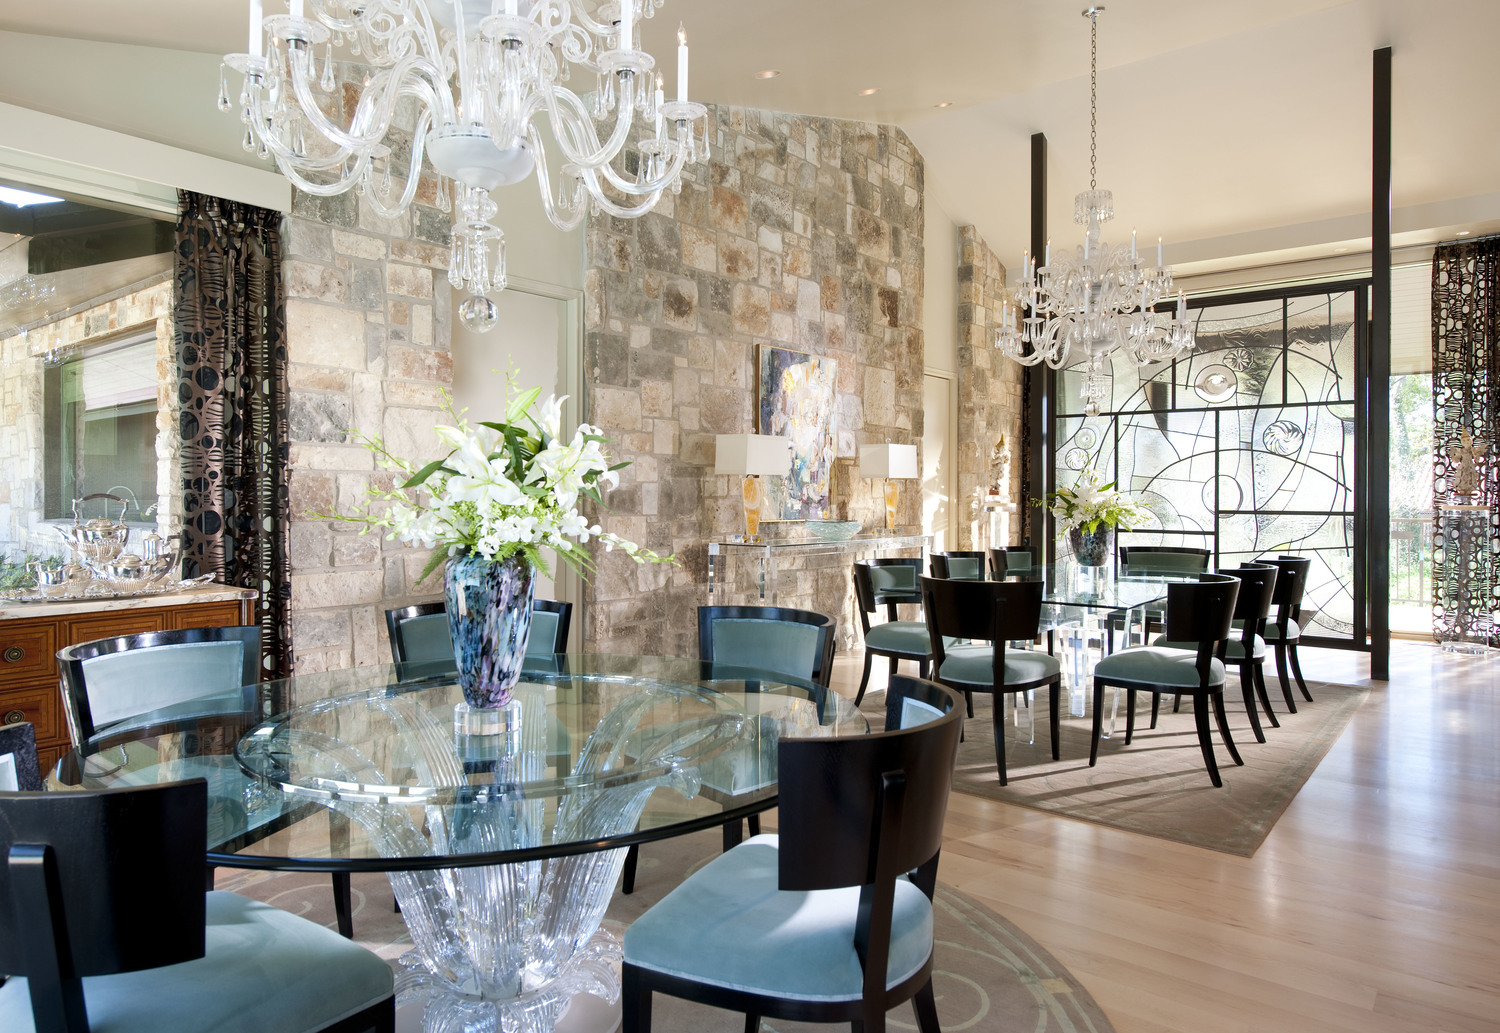 design guide Texas Design Guide: Smiling Interiors by Mary Anne Smiley Bluff View 2